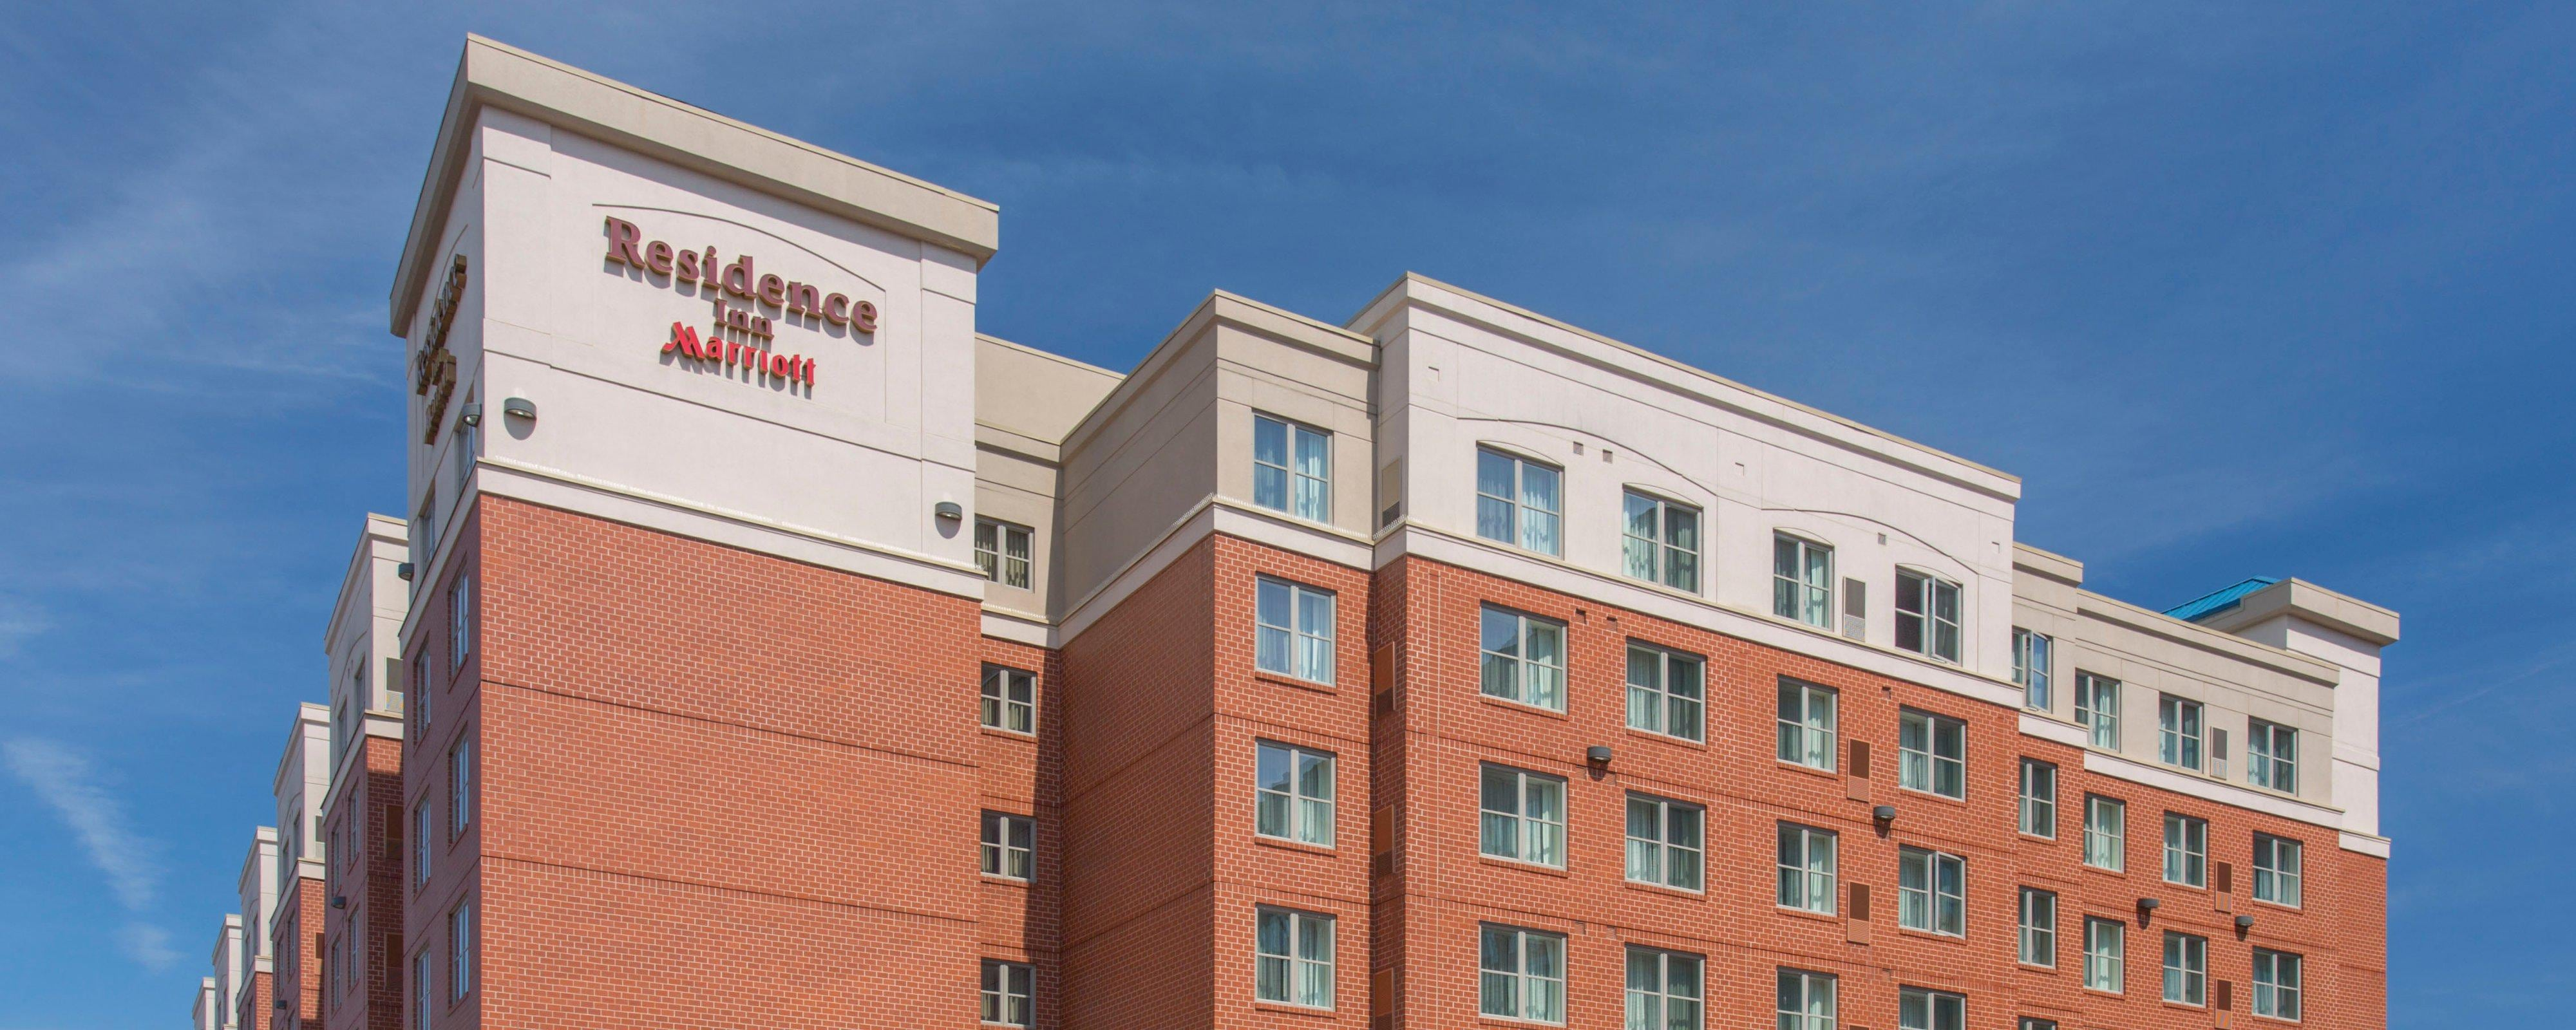 Residence Inn Moncton Information | Phone Number, Address, and ...